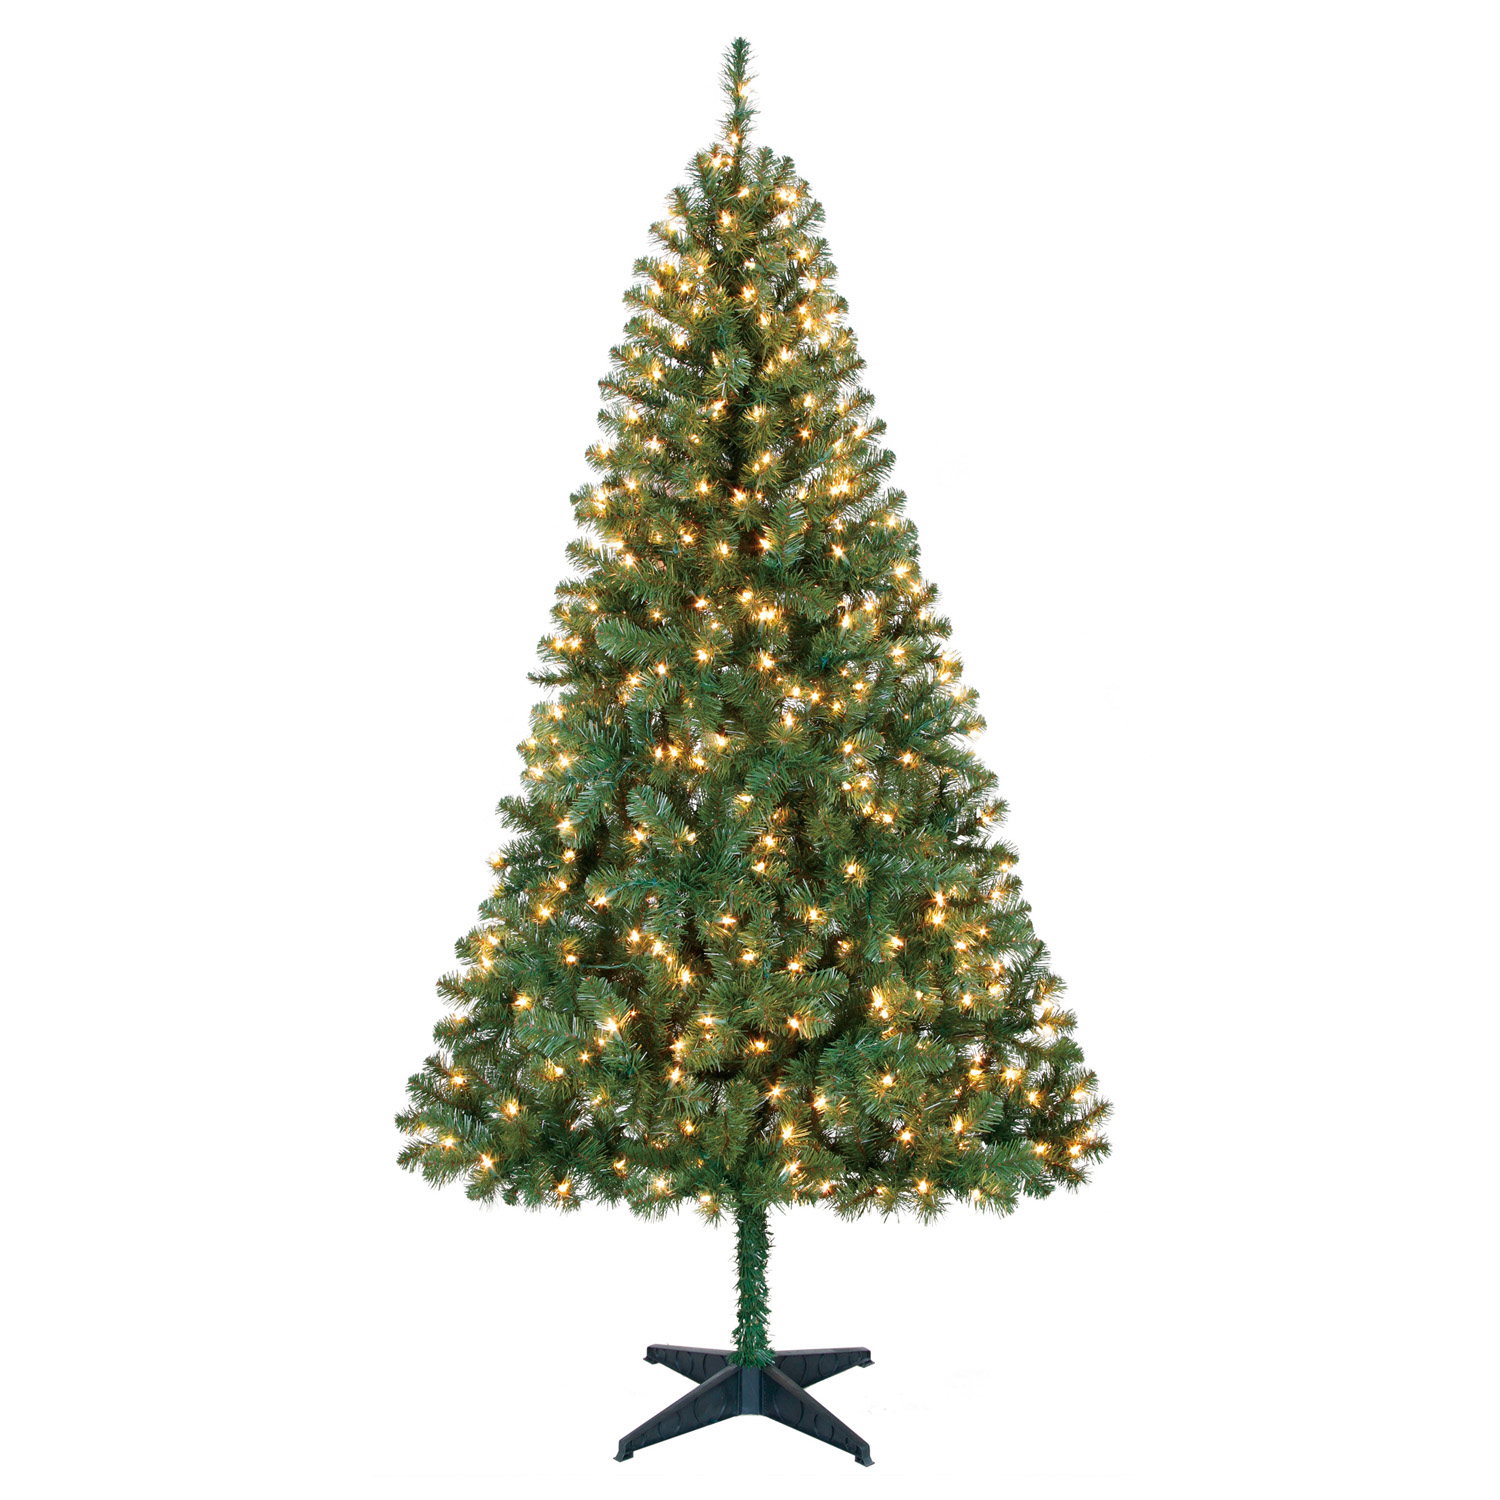 Holiday Time 6.5ft Pre-Lit Madison Pine Artificial Christmas Tree with 350 Clear-Lights - Green